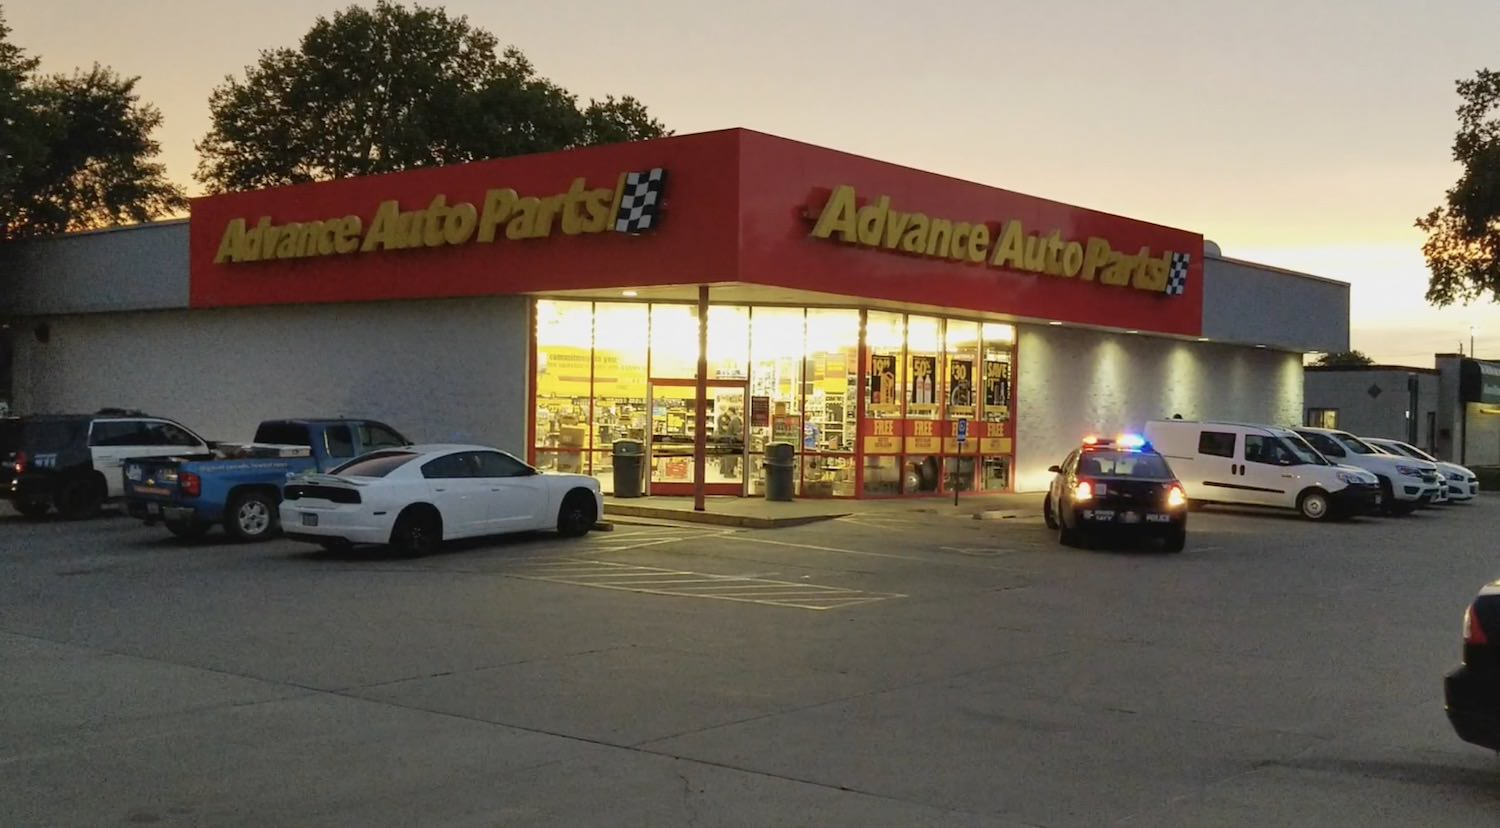 Attempted robbery of Advance Auto on Hamilton Blvd in Sioux City